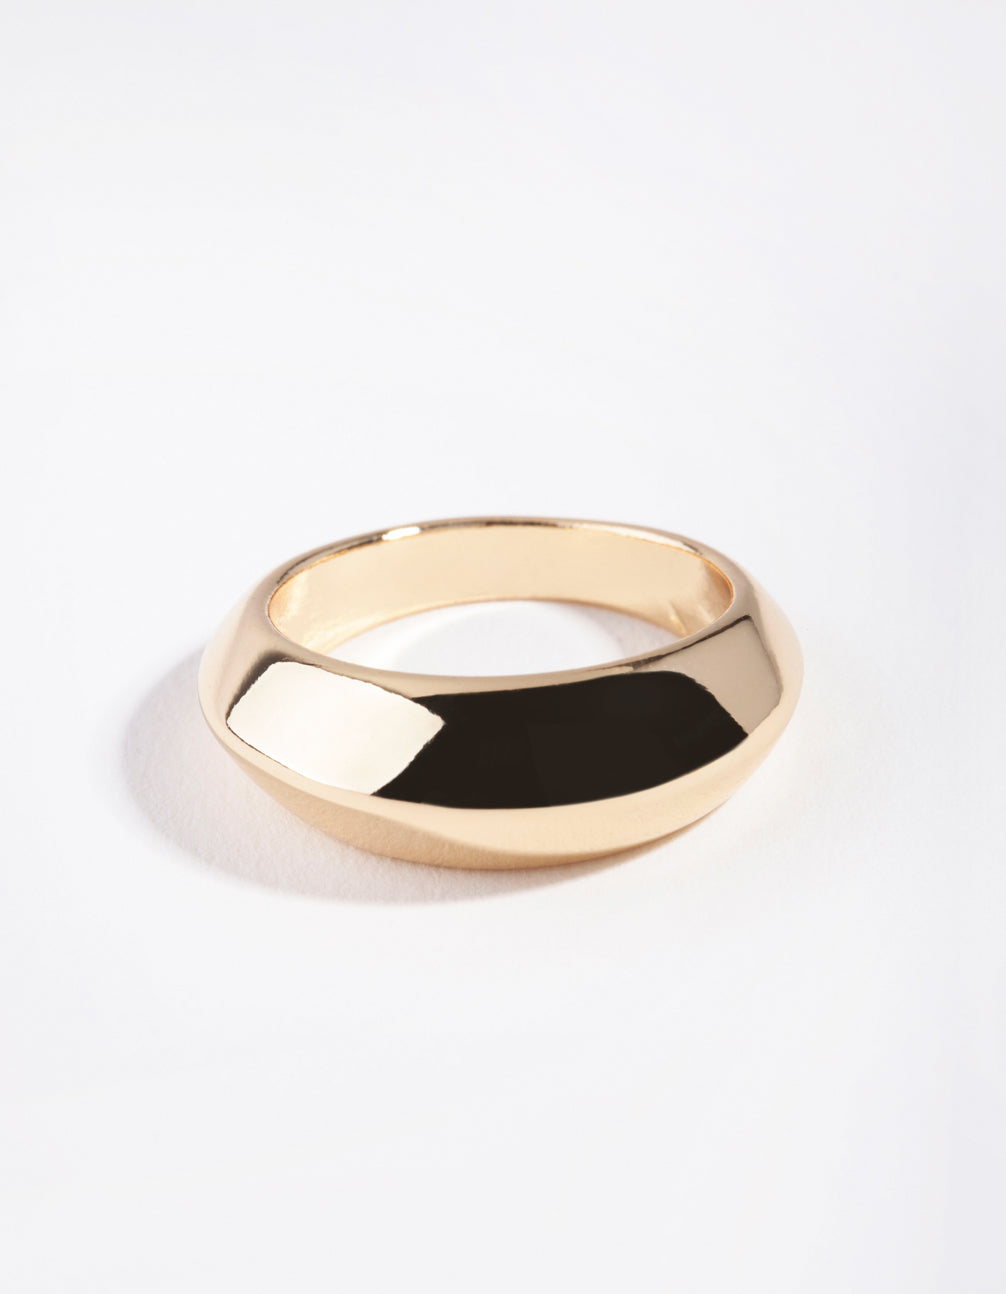 Real Gold Plated Graduating Ring